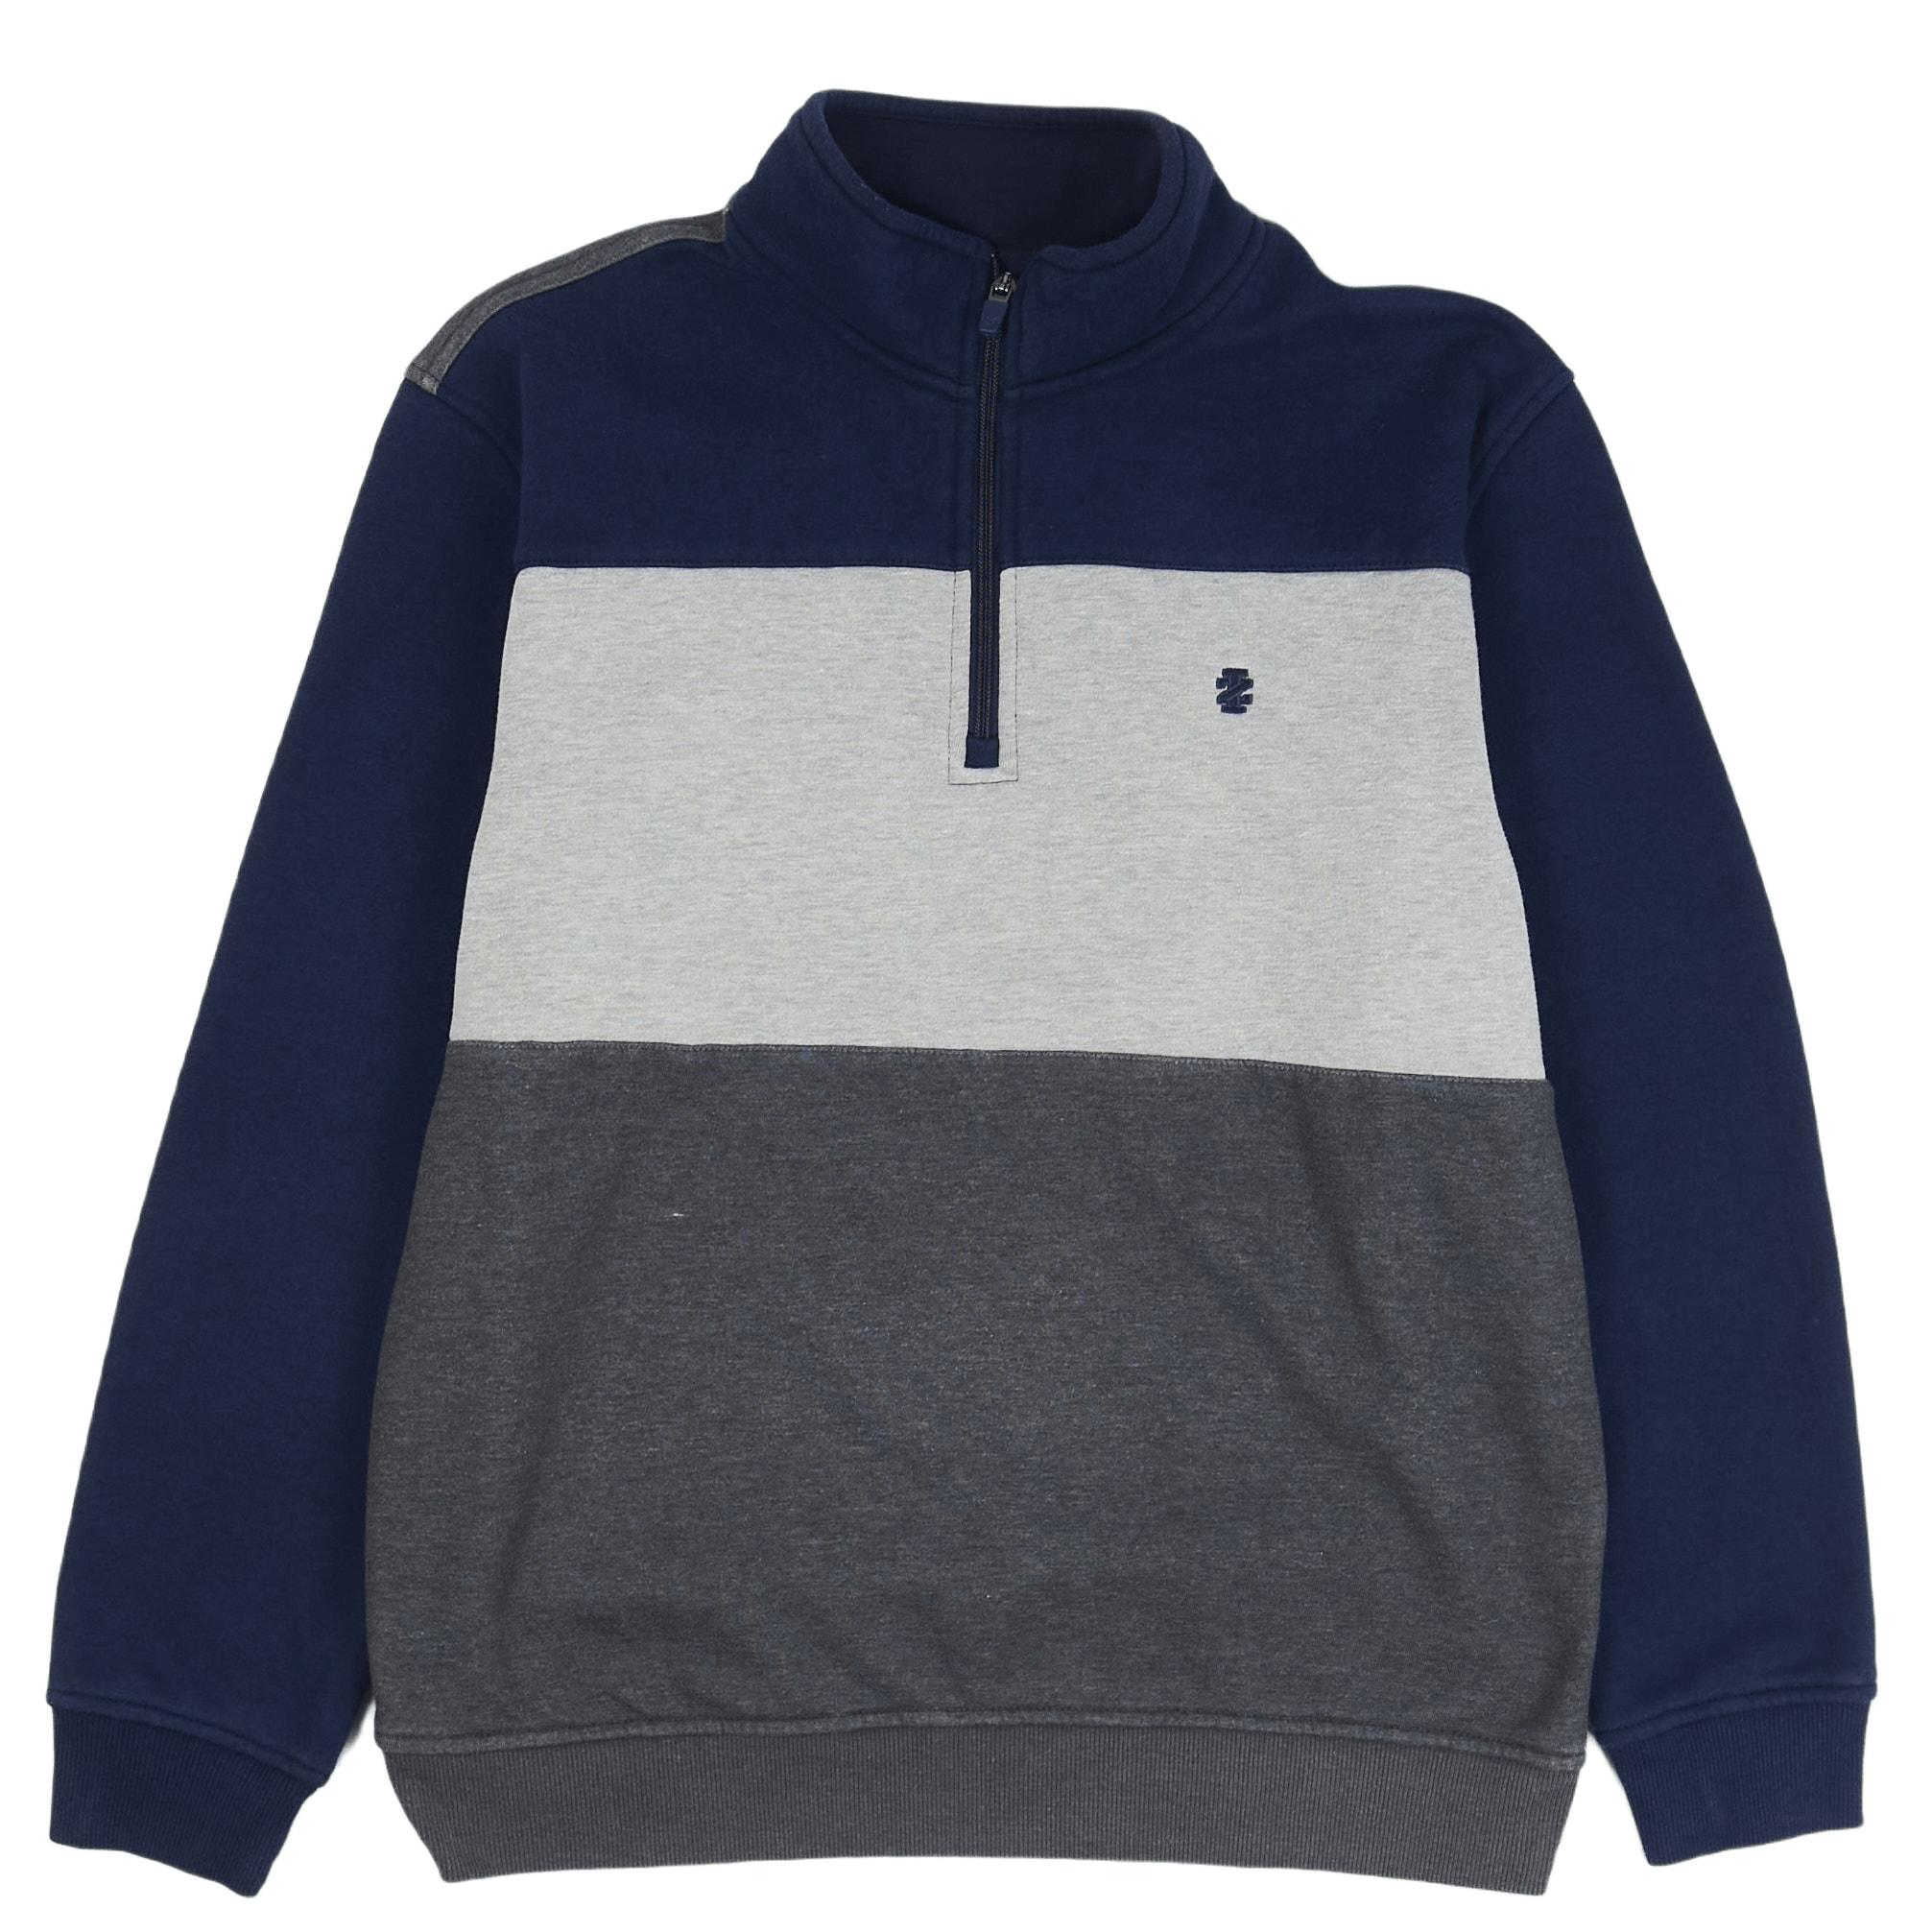 IZOD 1/4 Zip Sweatshirt